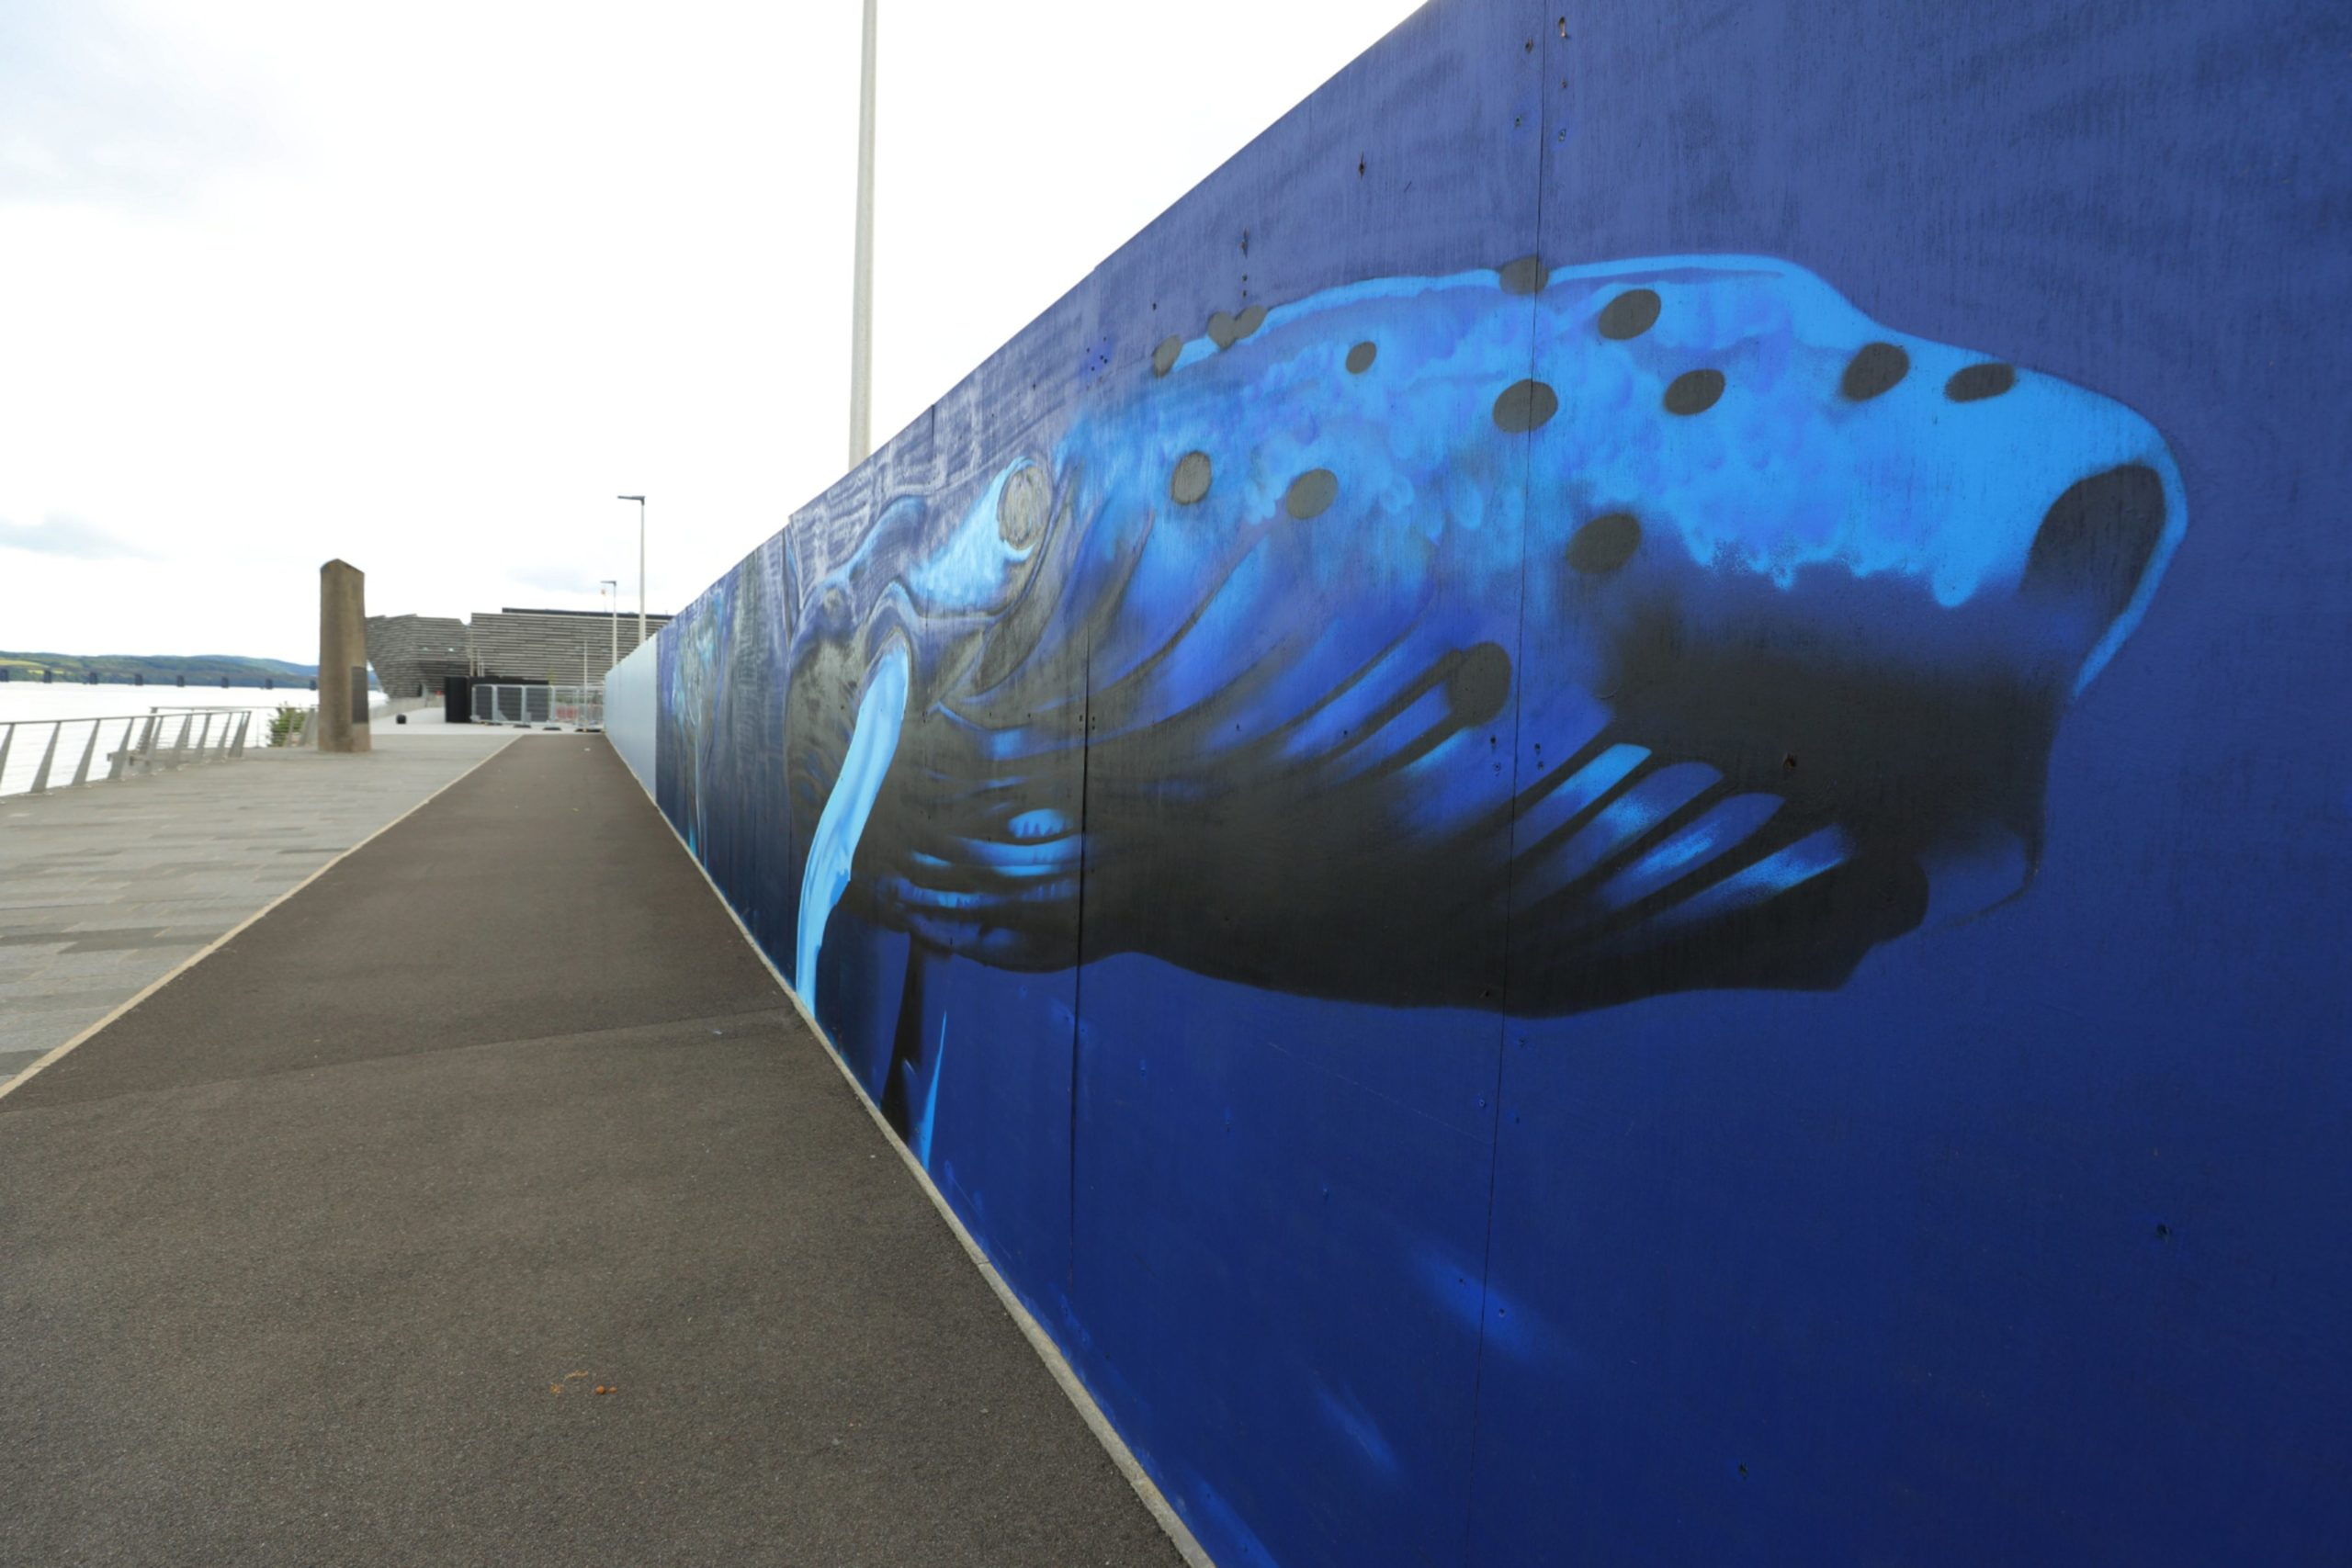 The mural of the Tay whale, in it's new location on the Waterfront in Dundee today. Saturday 11th July 2020 (Picture: Dougie Nicolson / DCT Media.)